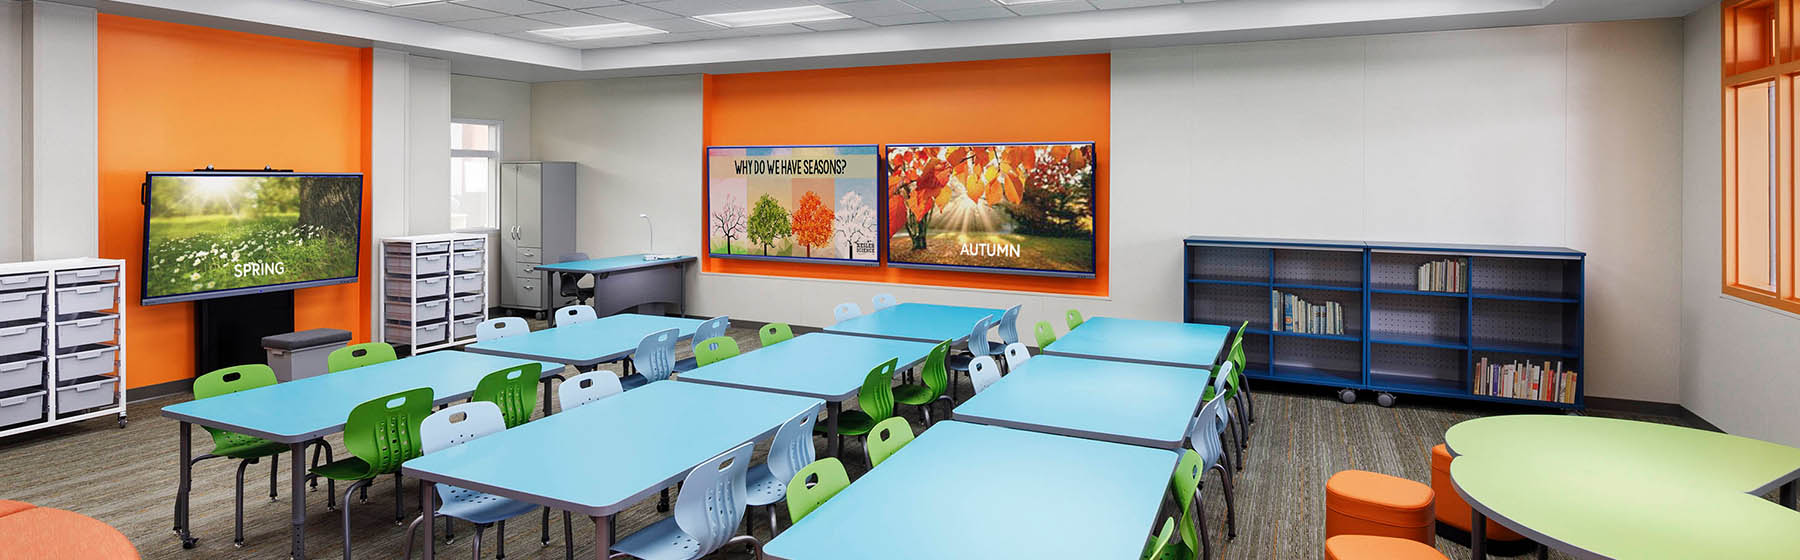 Phase 2 Improvements Are Complete at Huntington Seacliff Elementary School